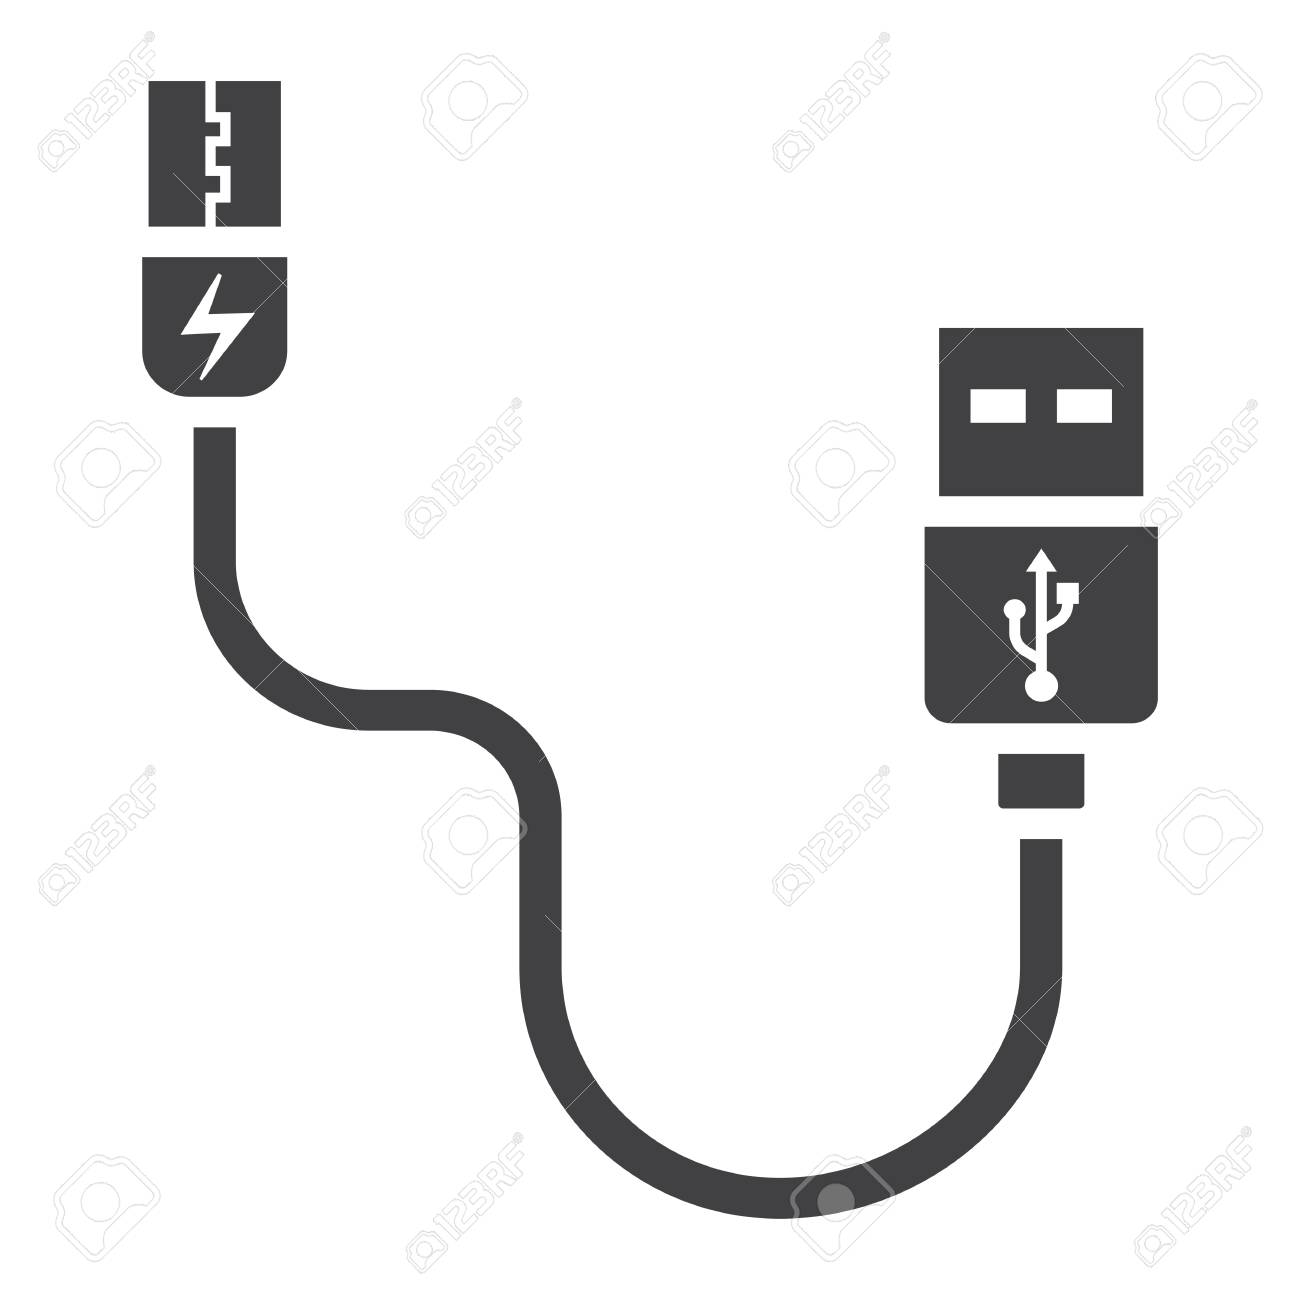 usb cable solid icon connector and charger vector graphics royalty free cliparts vectors and stock illustration image 81040071 usb cable solid icon connector and charger vector graphics